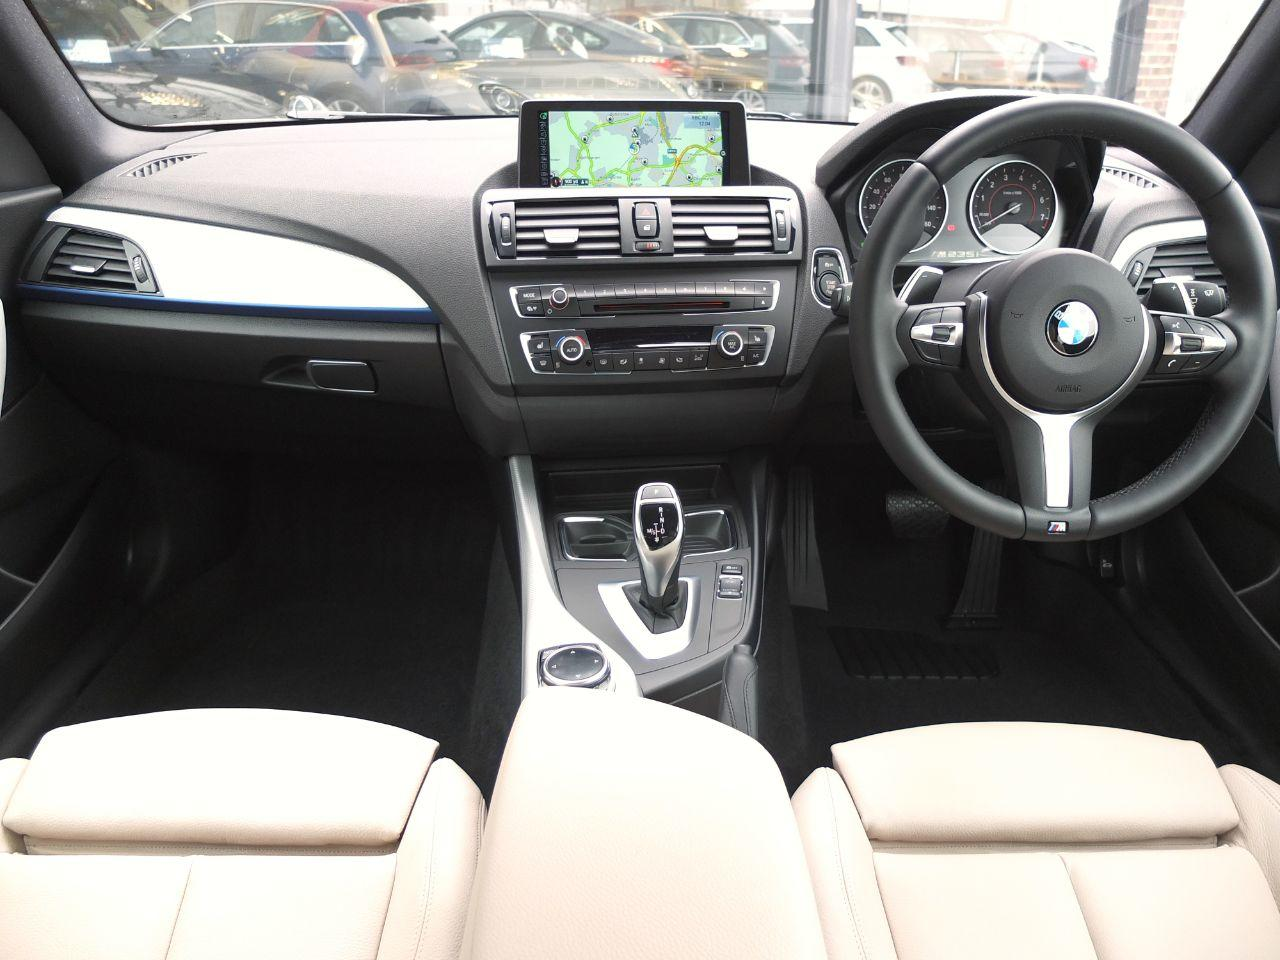 BMW 2 Series 3.0 M235i Coupe Sports Auto +++Spec Coupe Petrol Black Sapphire Metallic